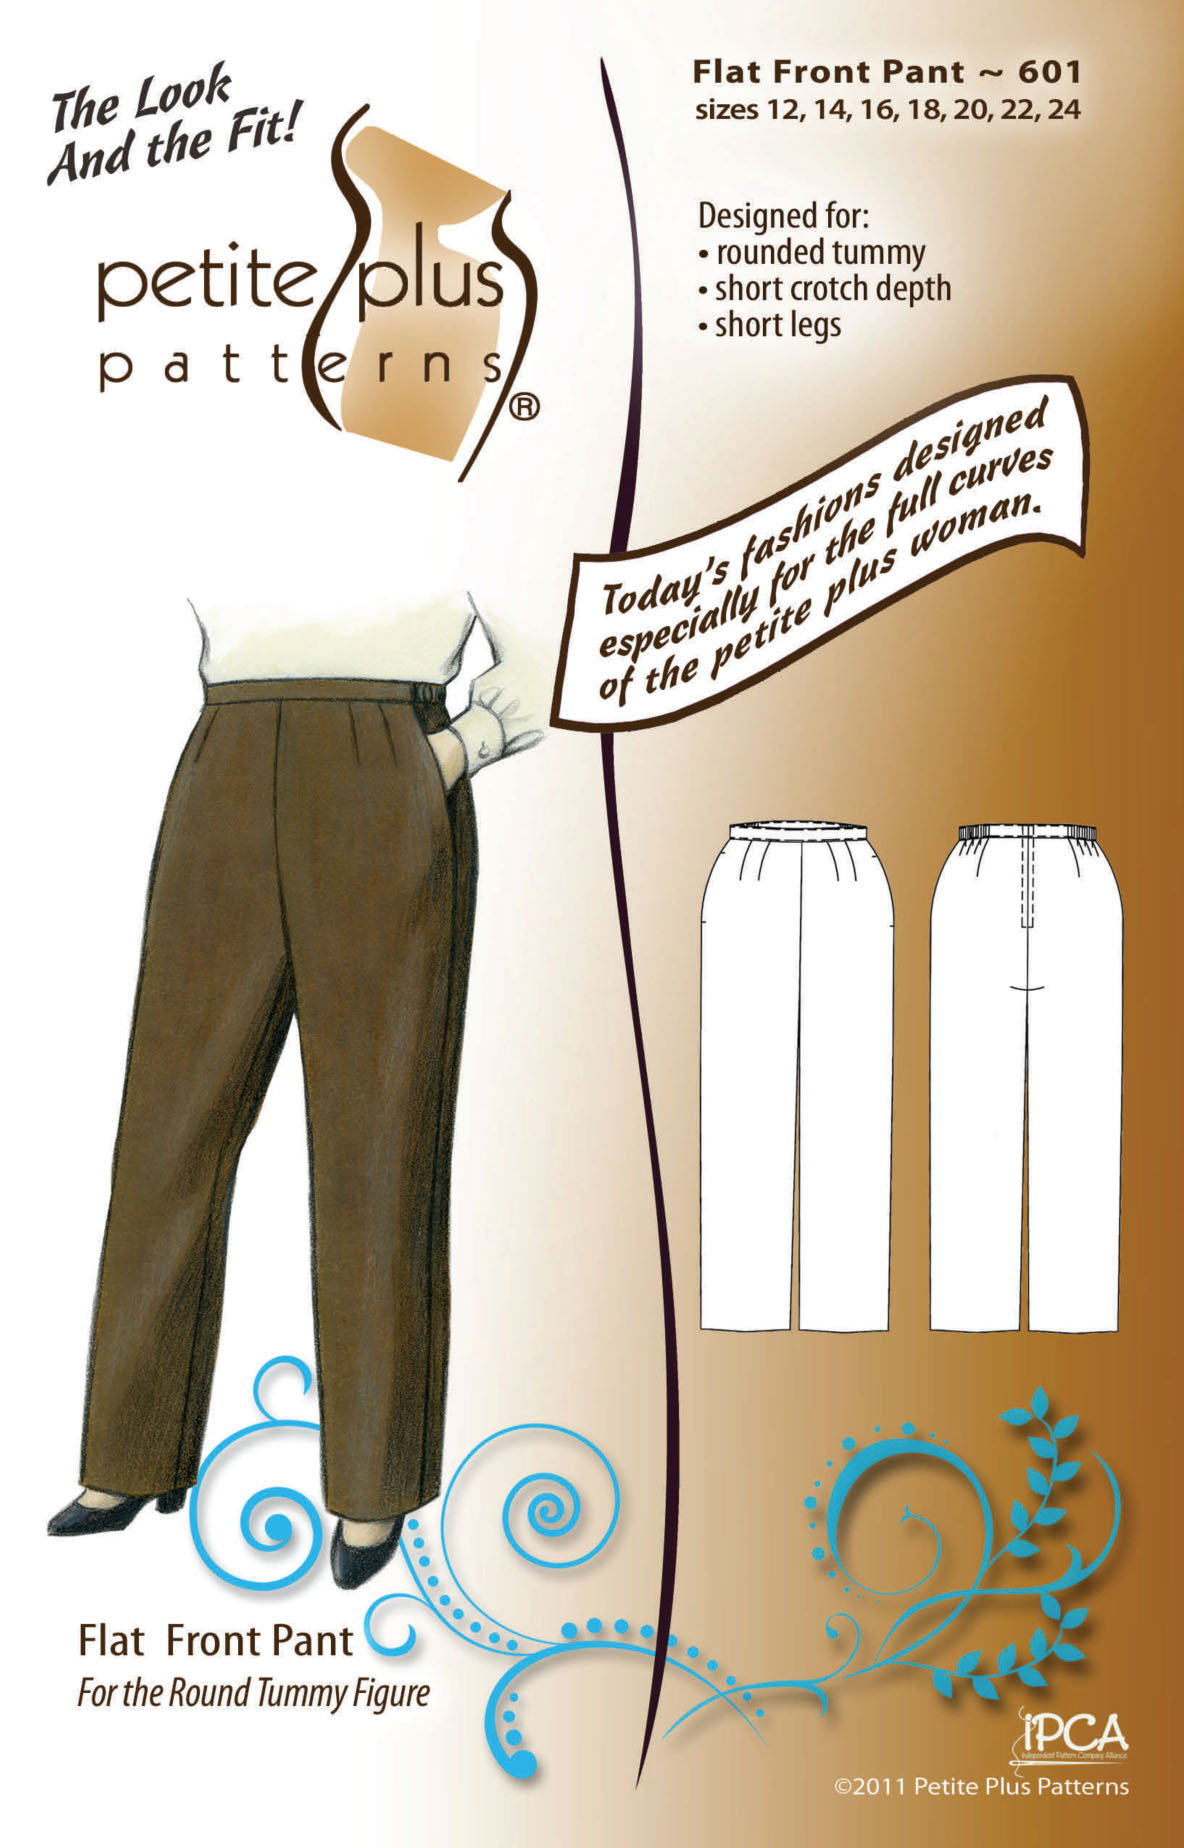 Petite Plus Patterns Flat Front Pant 601